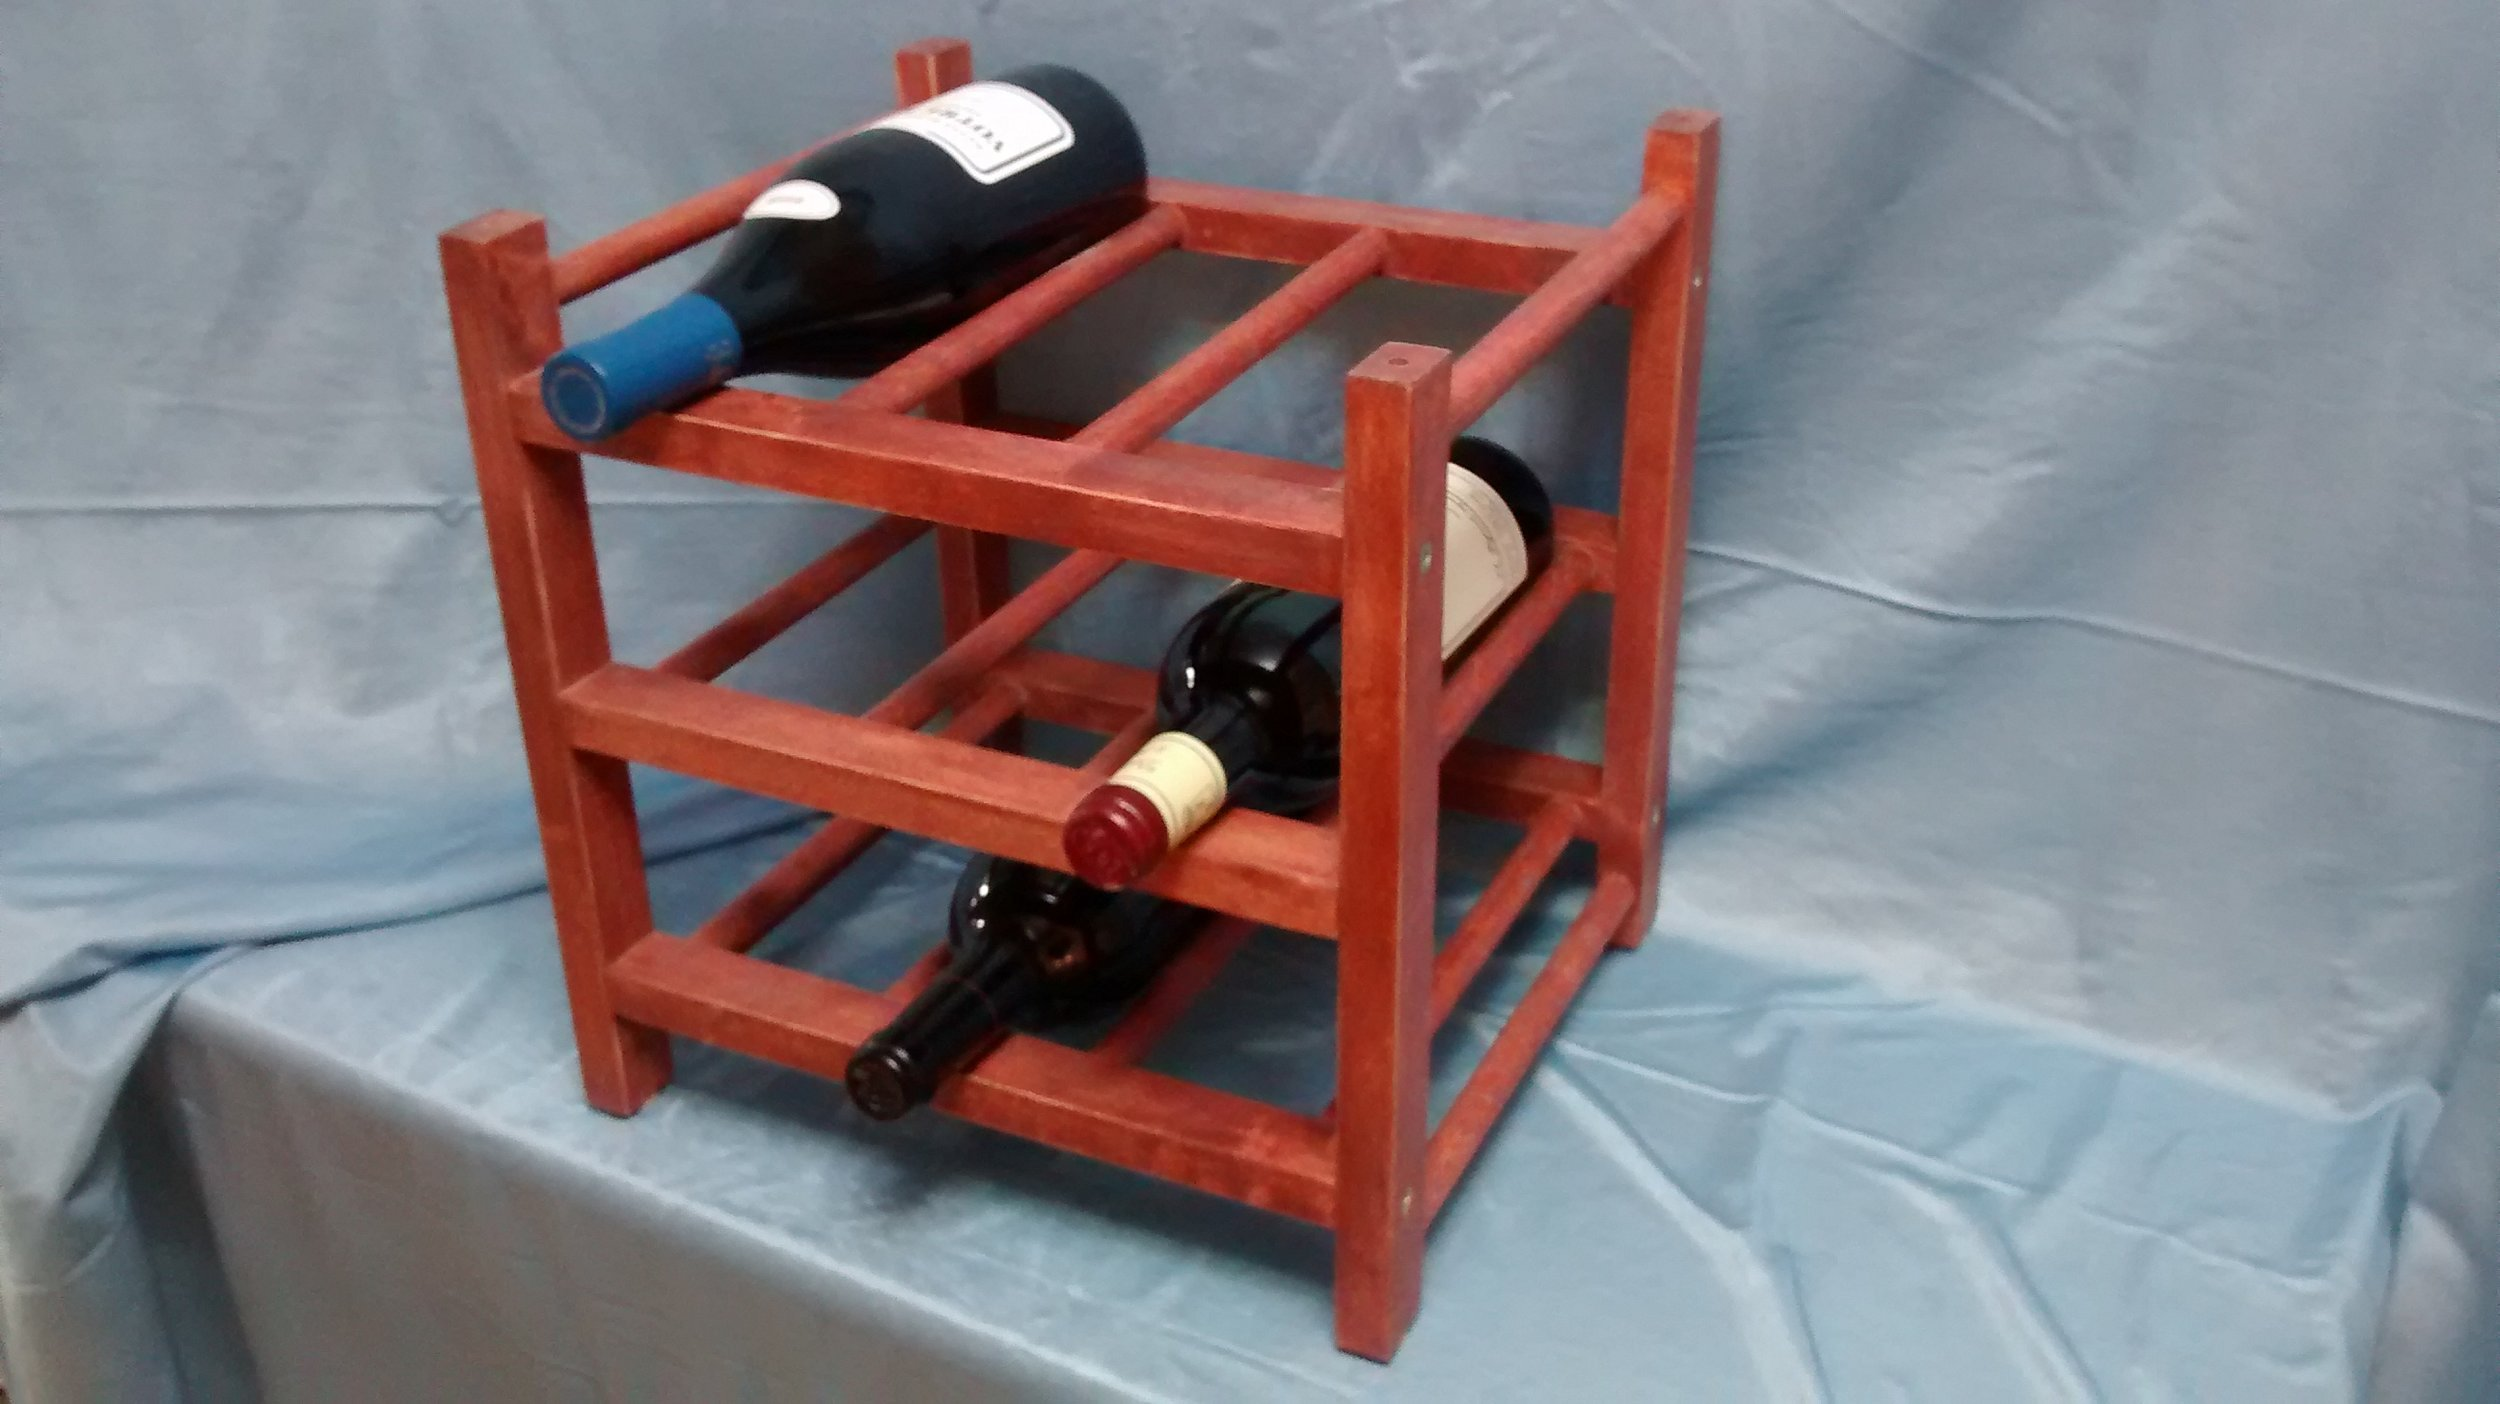 Refinished Wooden Wine Rack #2